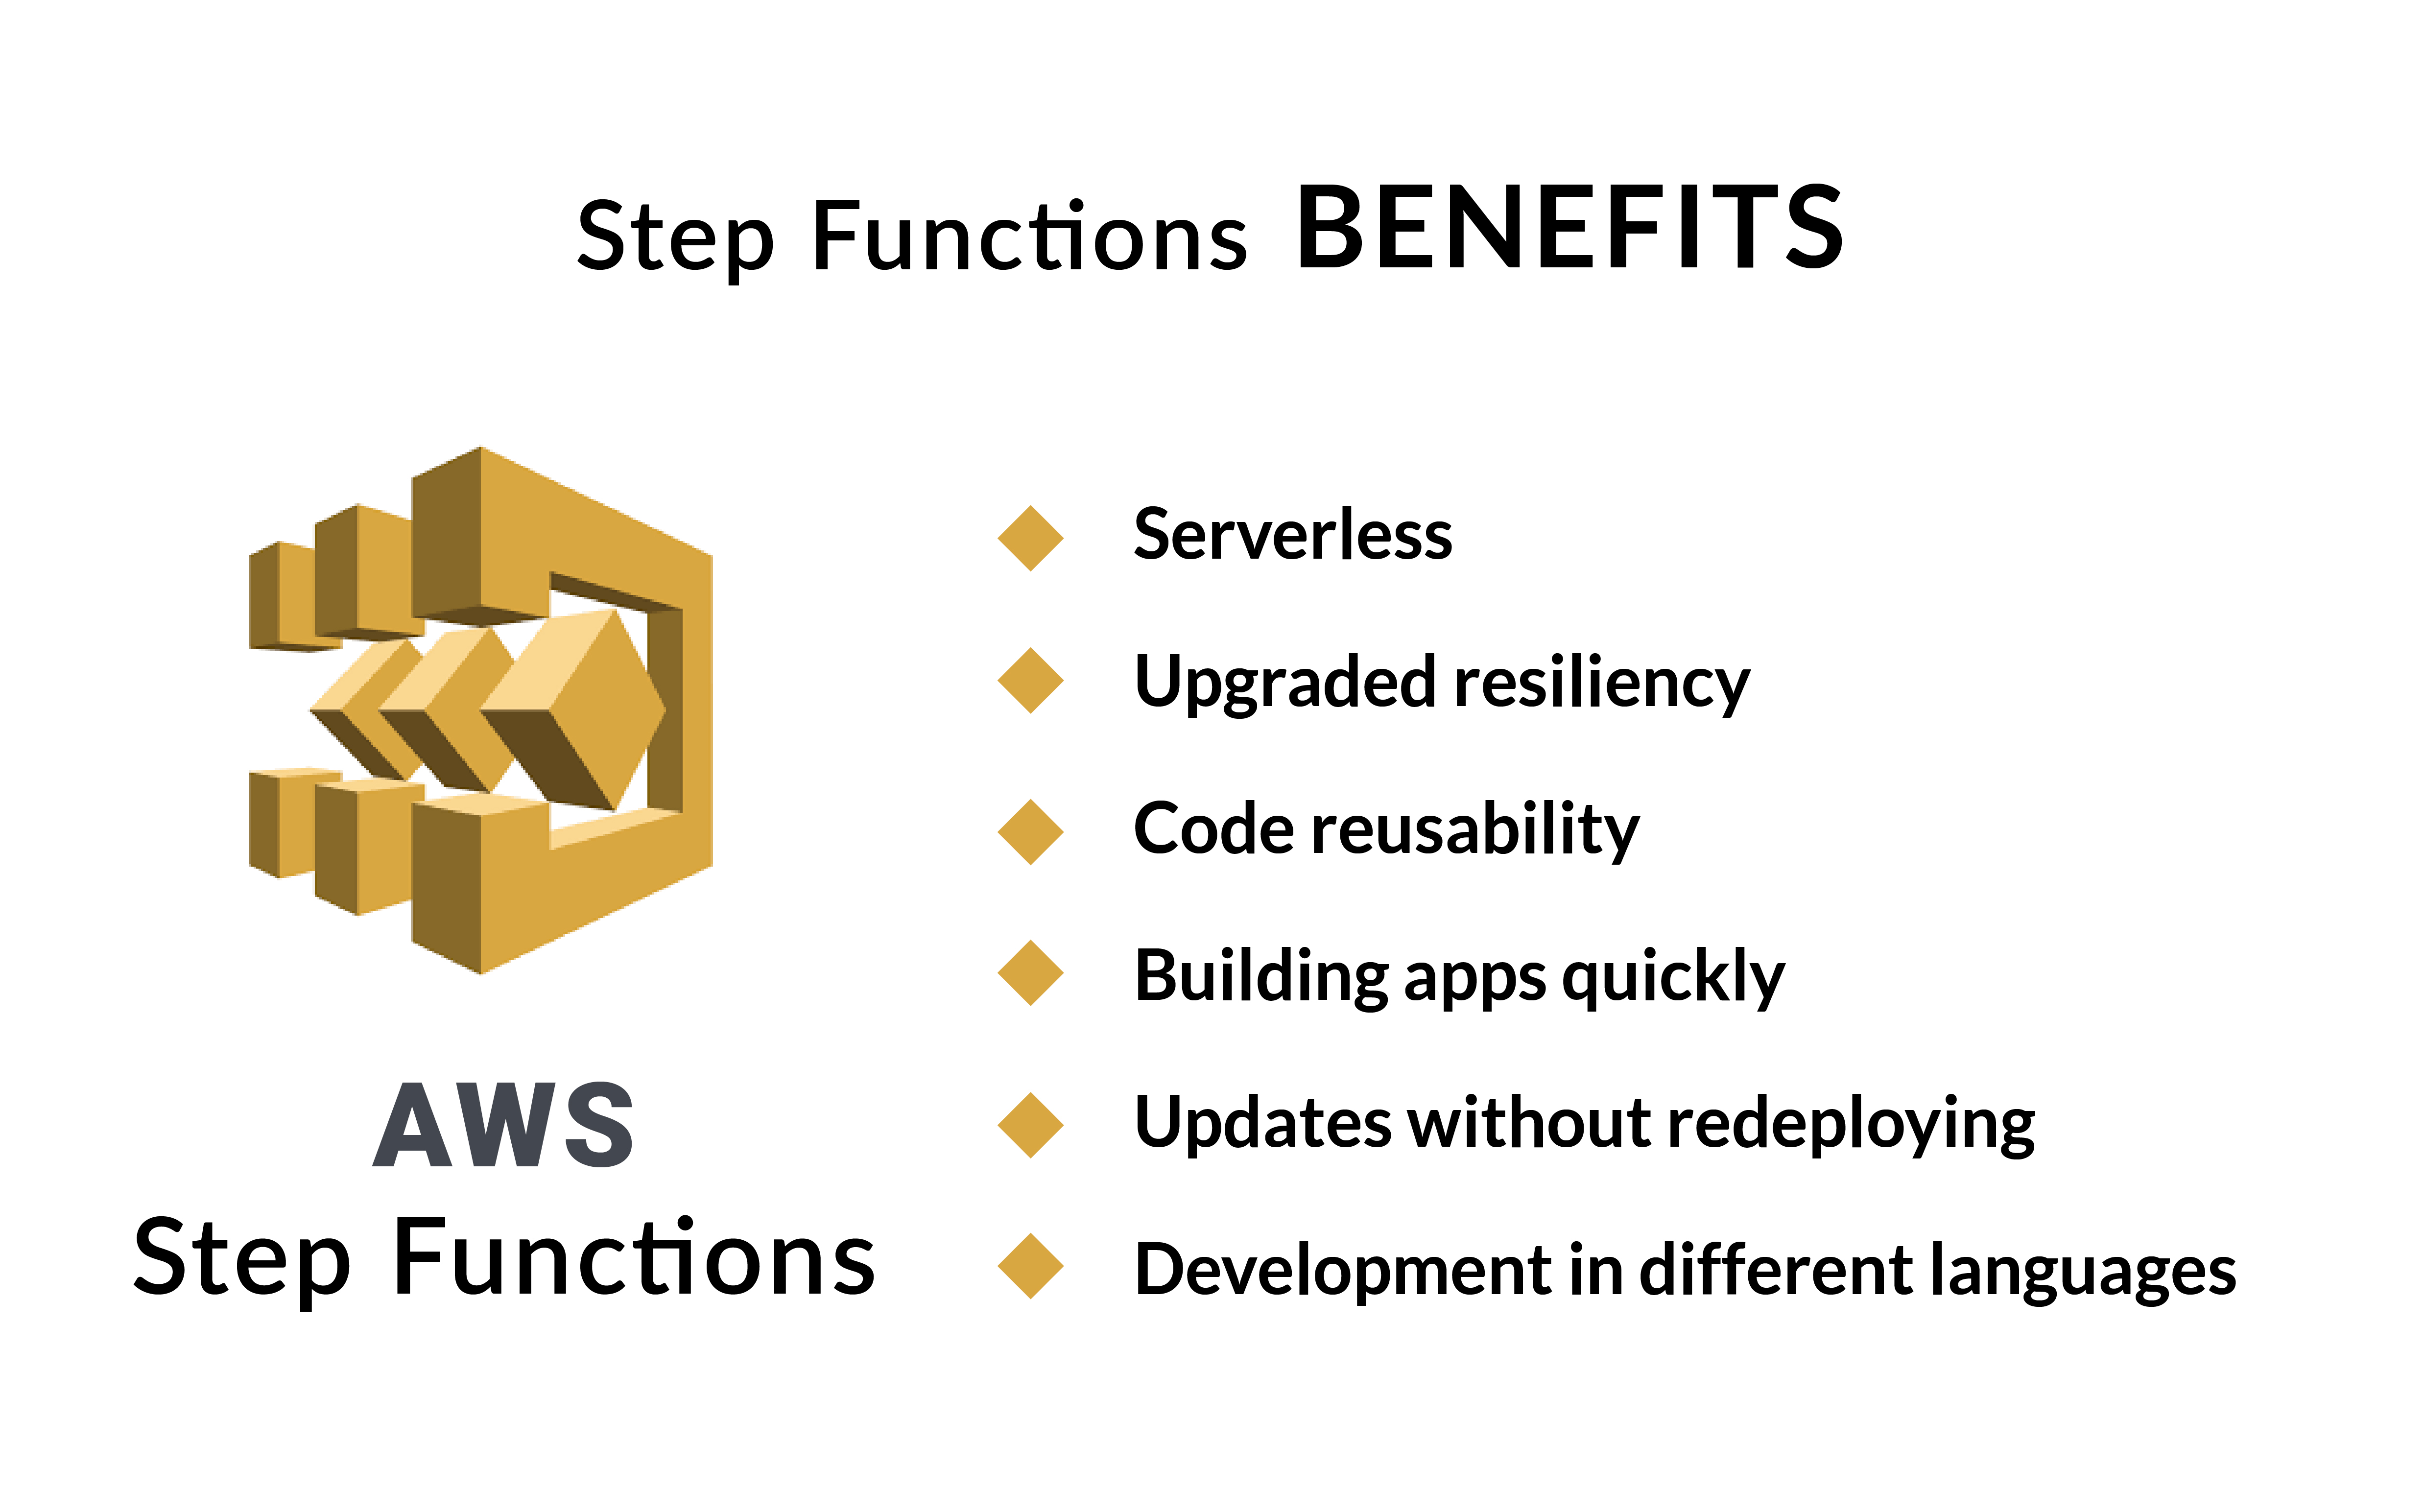 Step Functions benefits